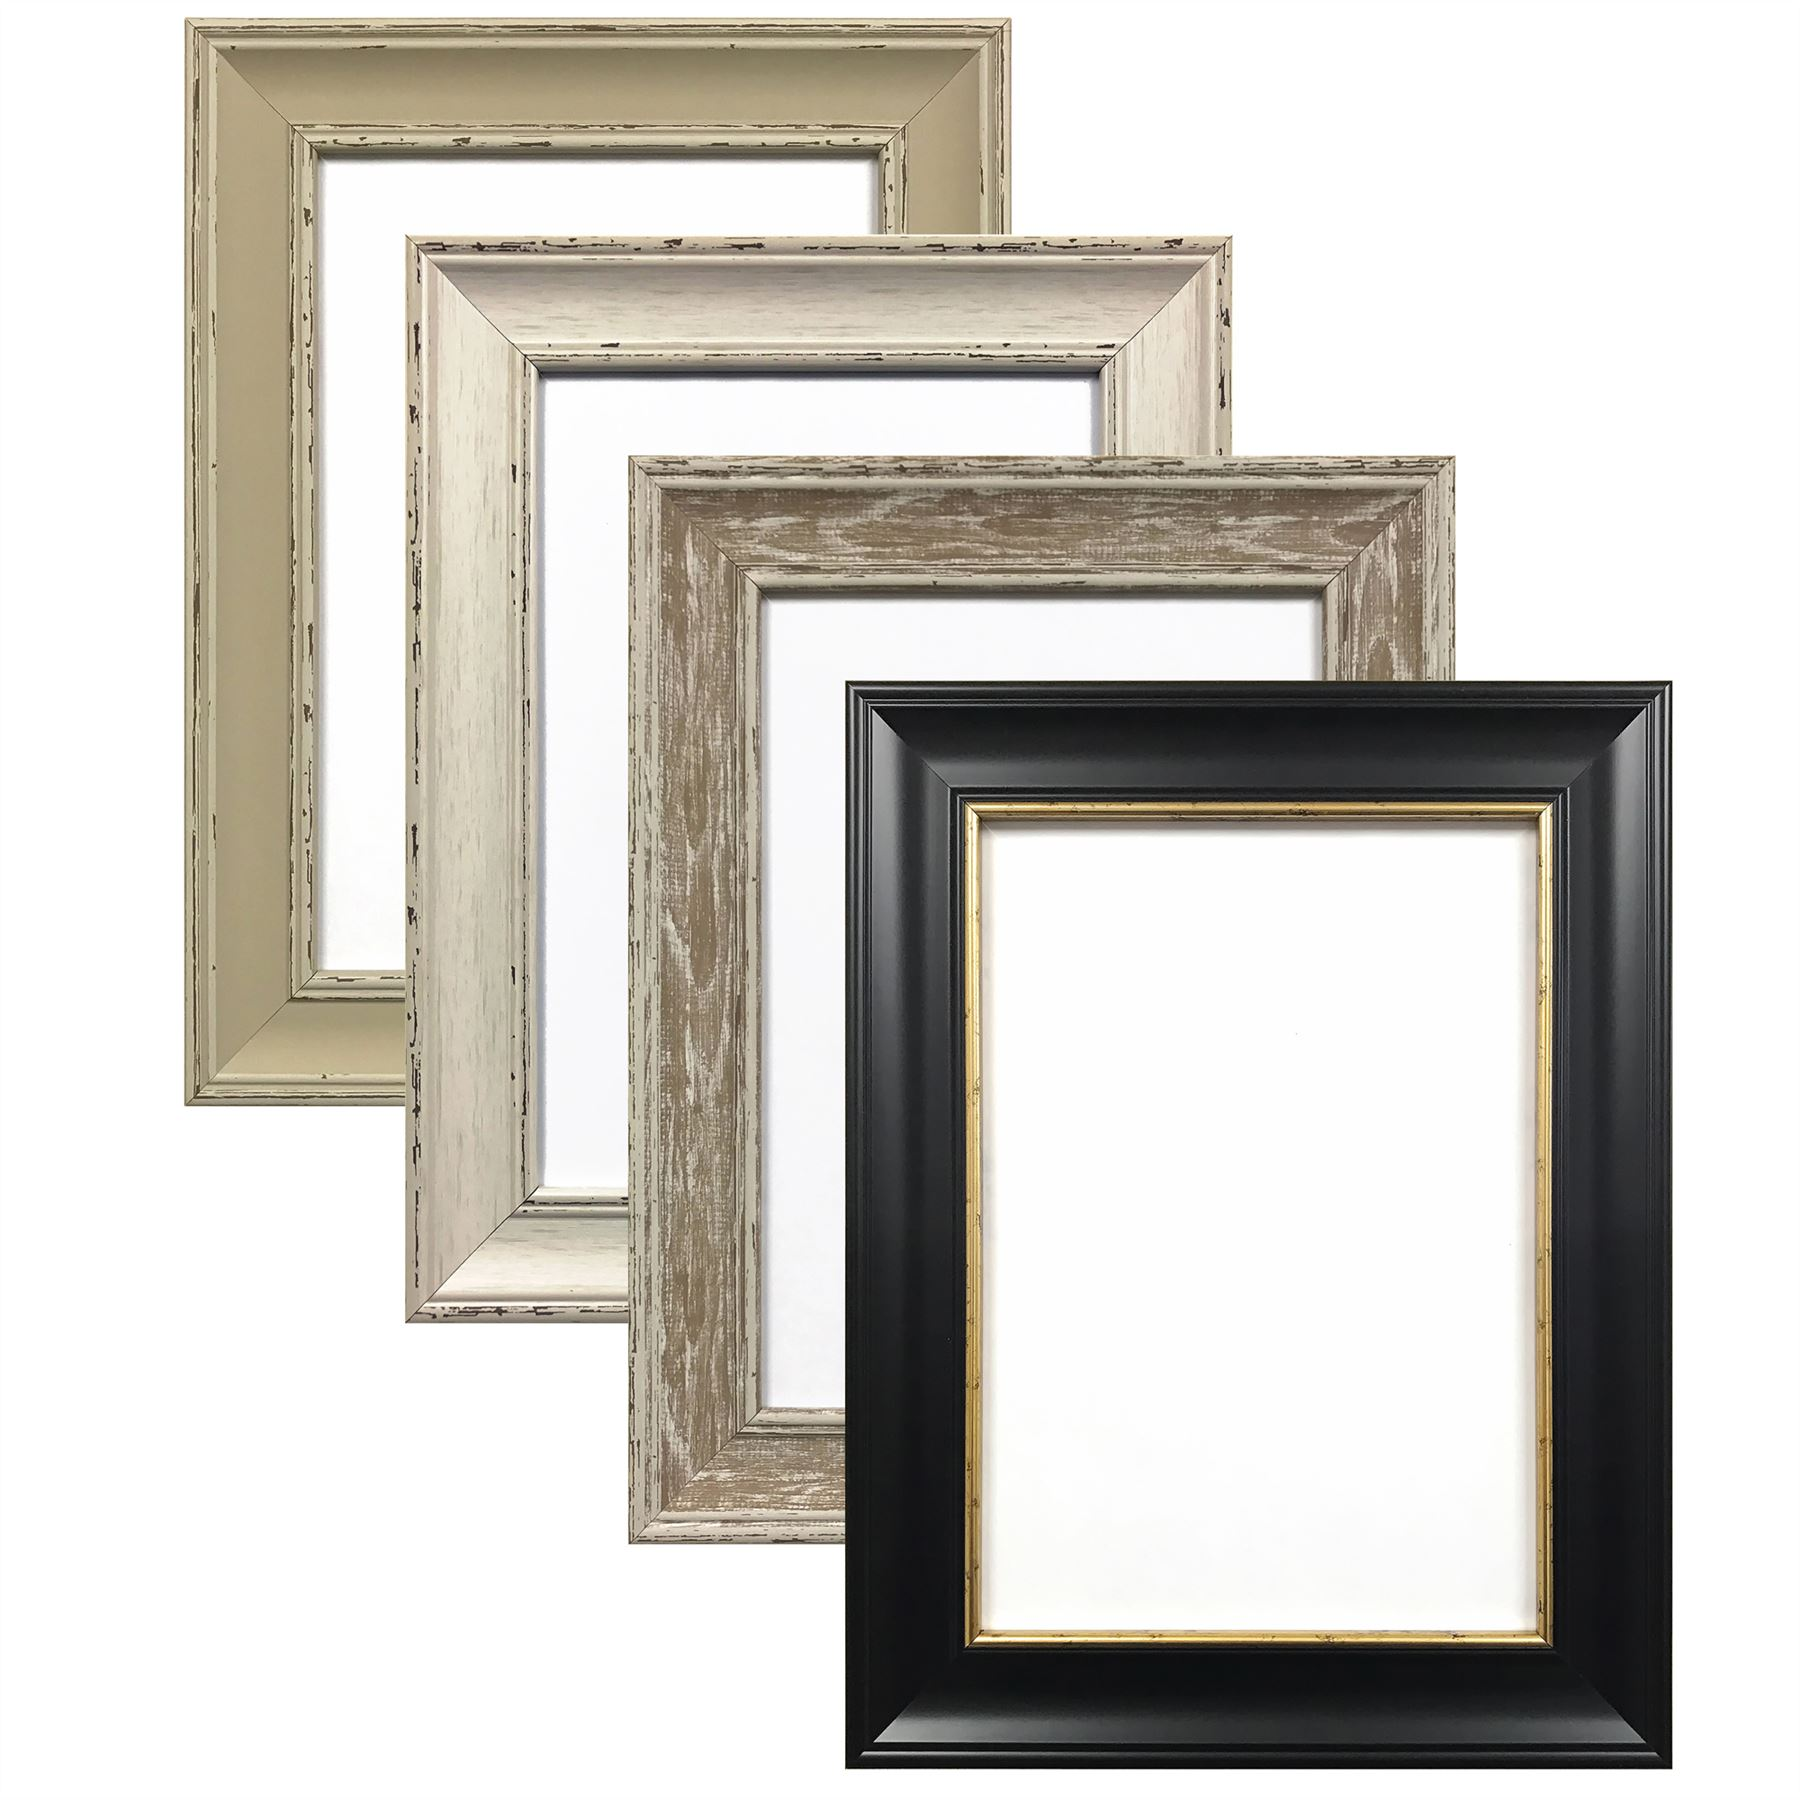 Large poster picture frames